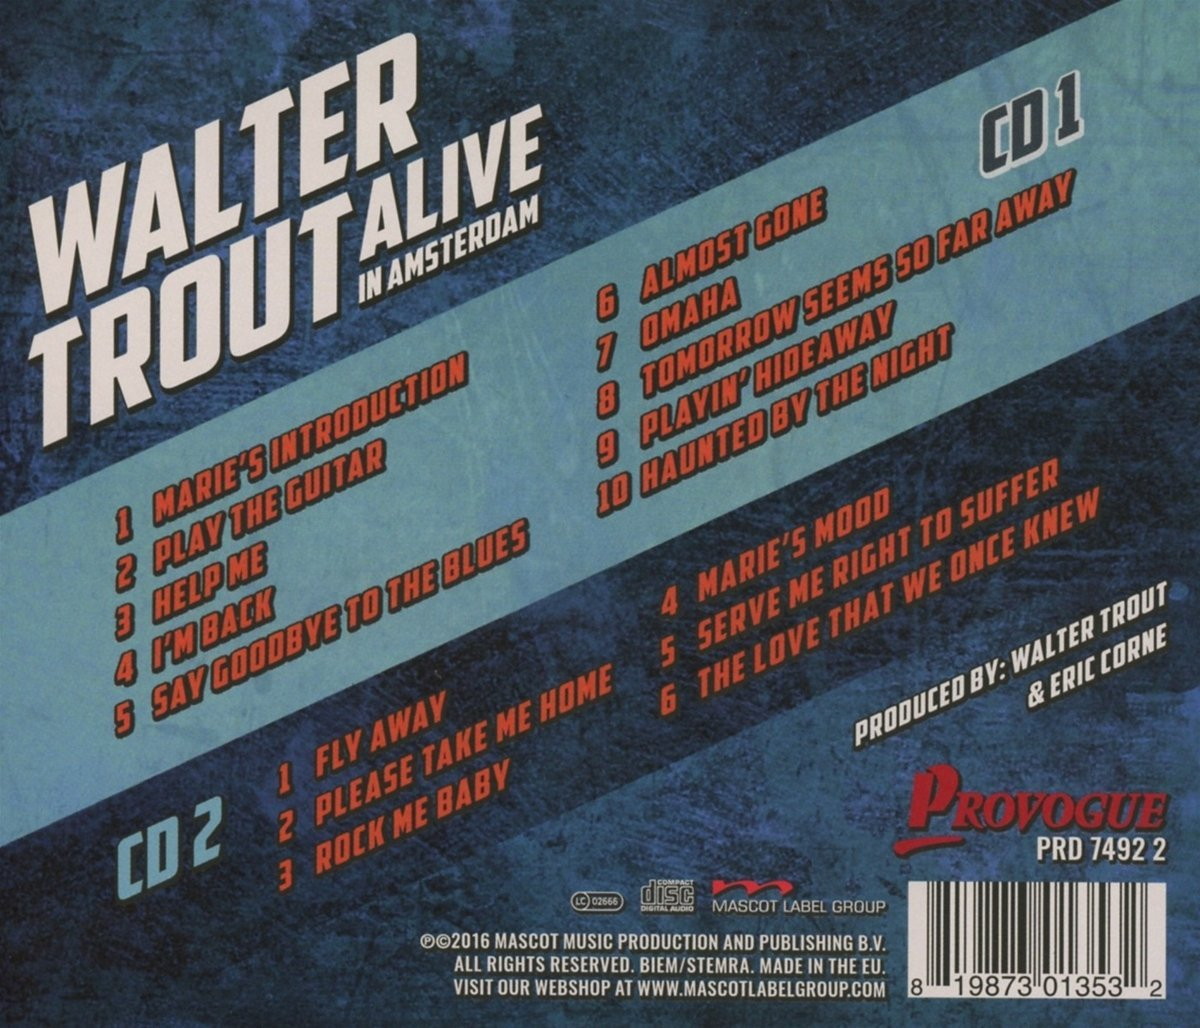 Walter Trout - Alive in Amsterdam 71OwwhufnpL._SL1200_